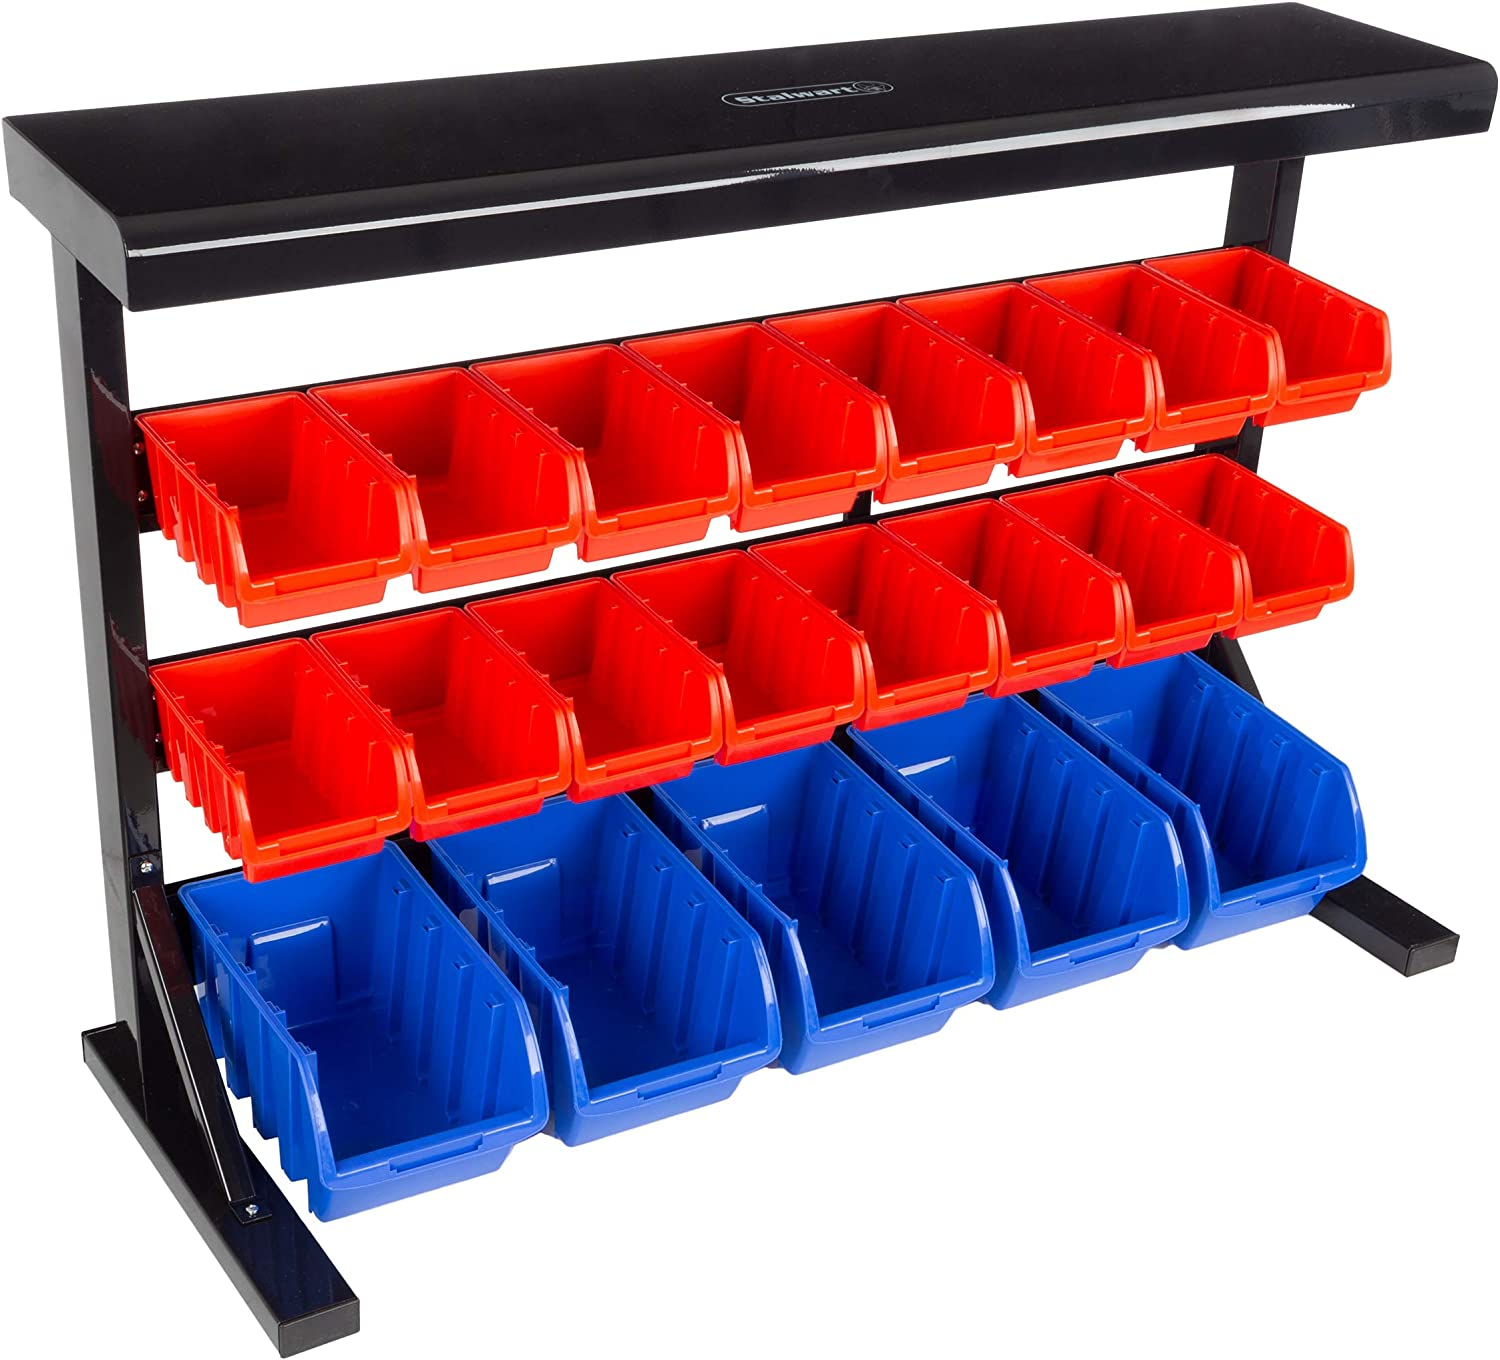 21 Bin Storage Rack Organizer- Wall Mountable Container with Removeable Bins for Tools, Hardware, Crafts, Office Supplies and More by Stalwart